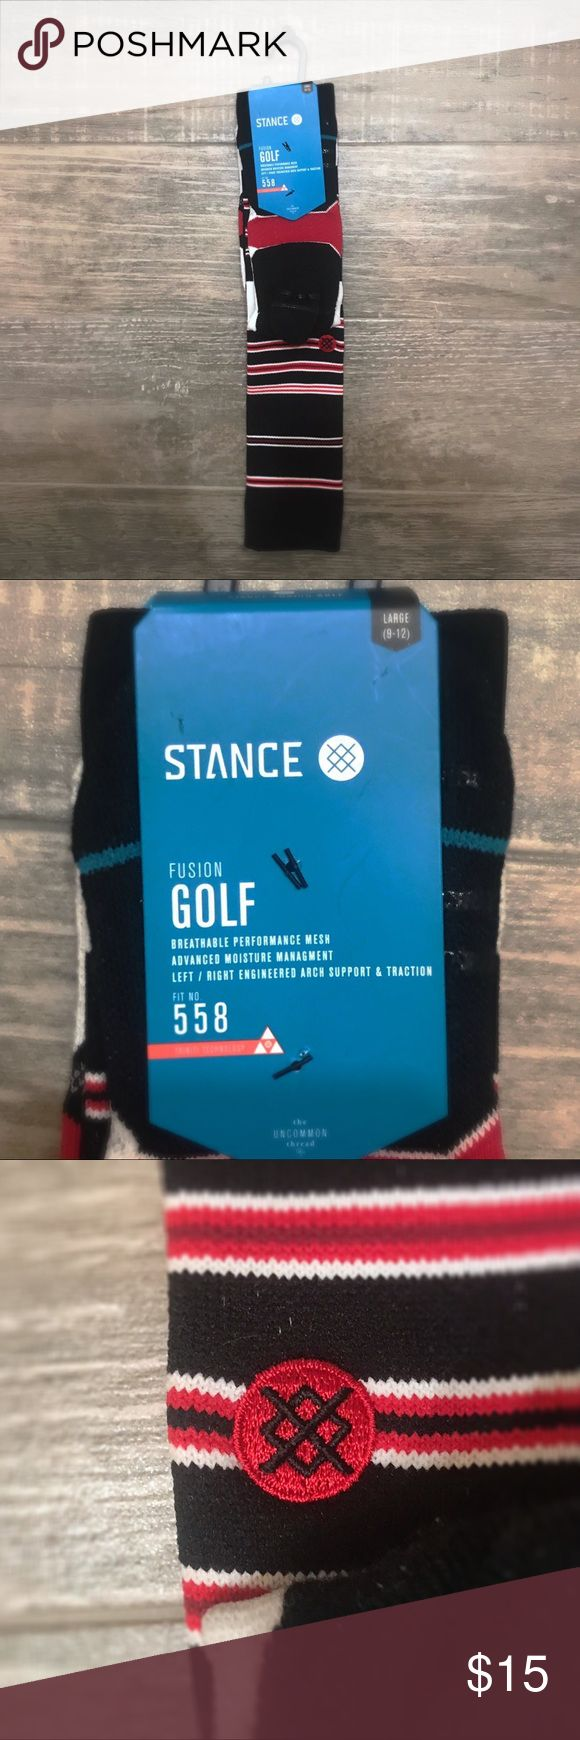 Stance Fusion Golf Socks Men's Size Large Brand new with tags, crew height, medium cushion, active secure support. Red and black. Stance Underwear & Socks Athletic Socks